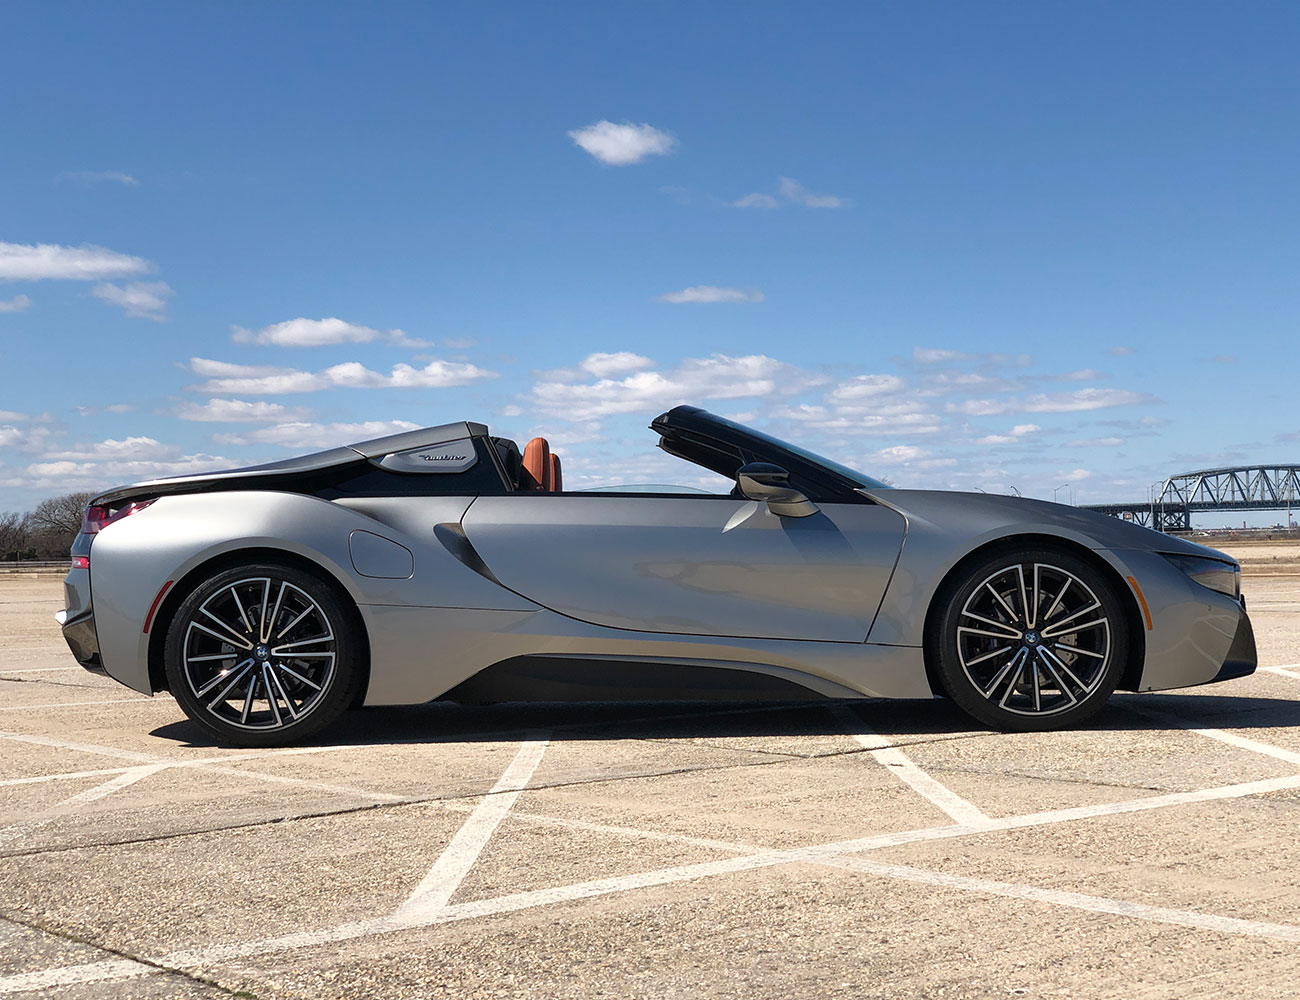 The Bmw I8 Roadster Is In One Sense Bavarian Motor Works S Halo Car A Range Topping Two Door With Lofty Price Tag That Represents Where Company